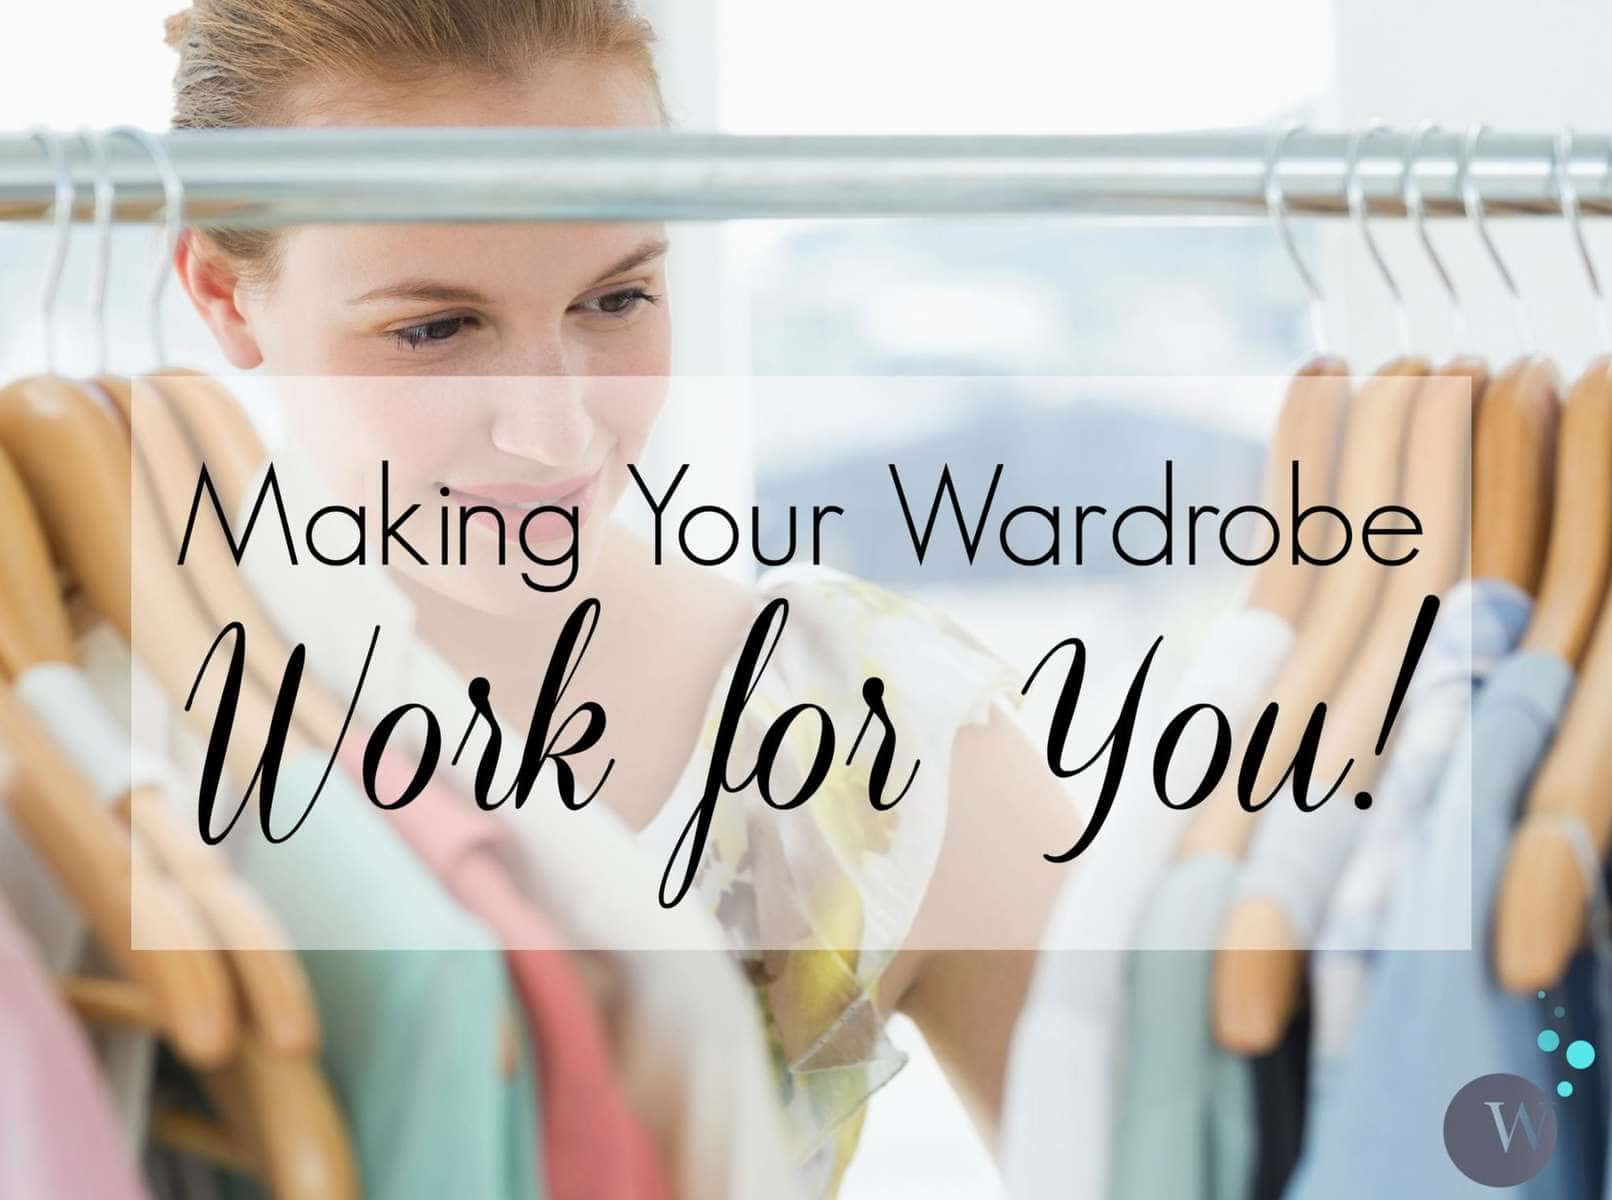 making your wardrobe work for you by wardrobe oxygen tips on how to adjust a wardrobe to fit your body and personal style